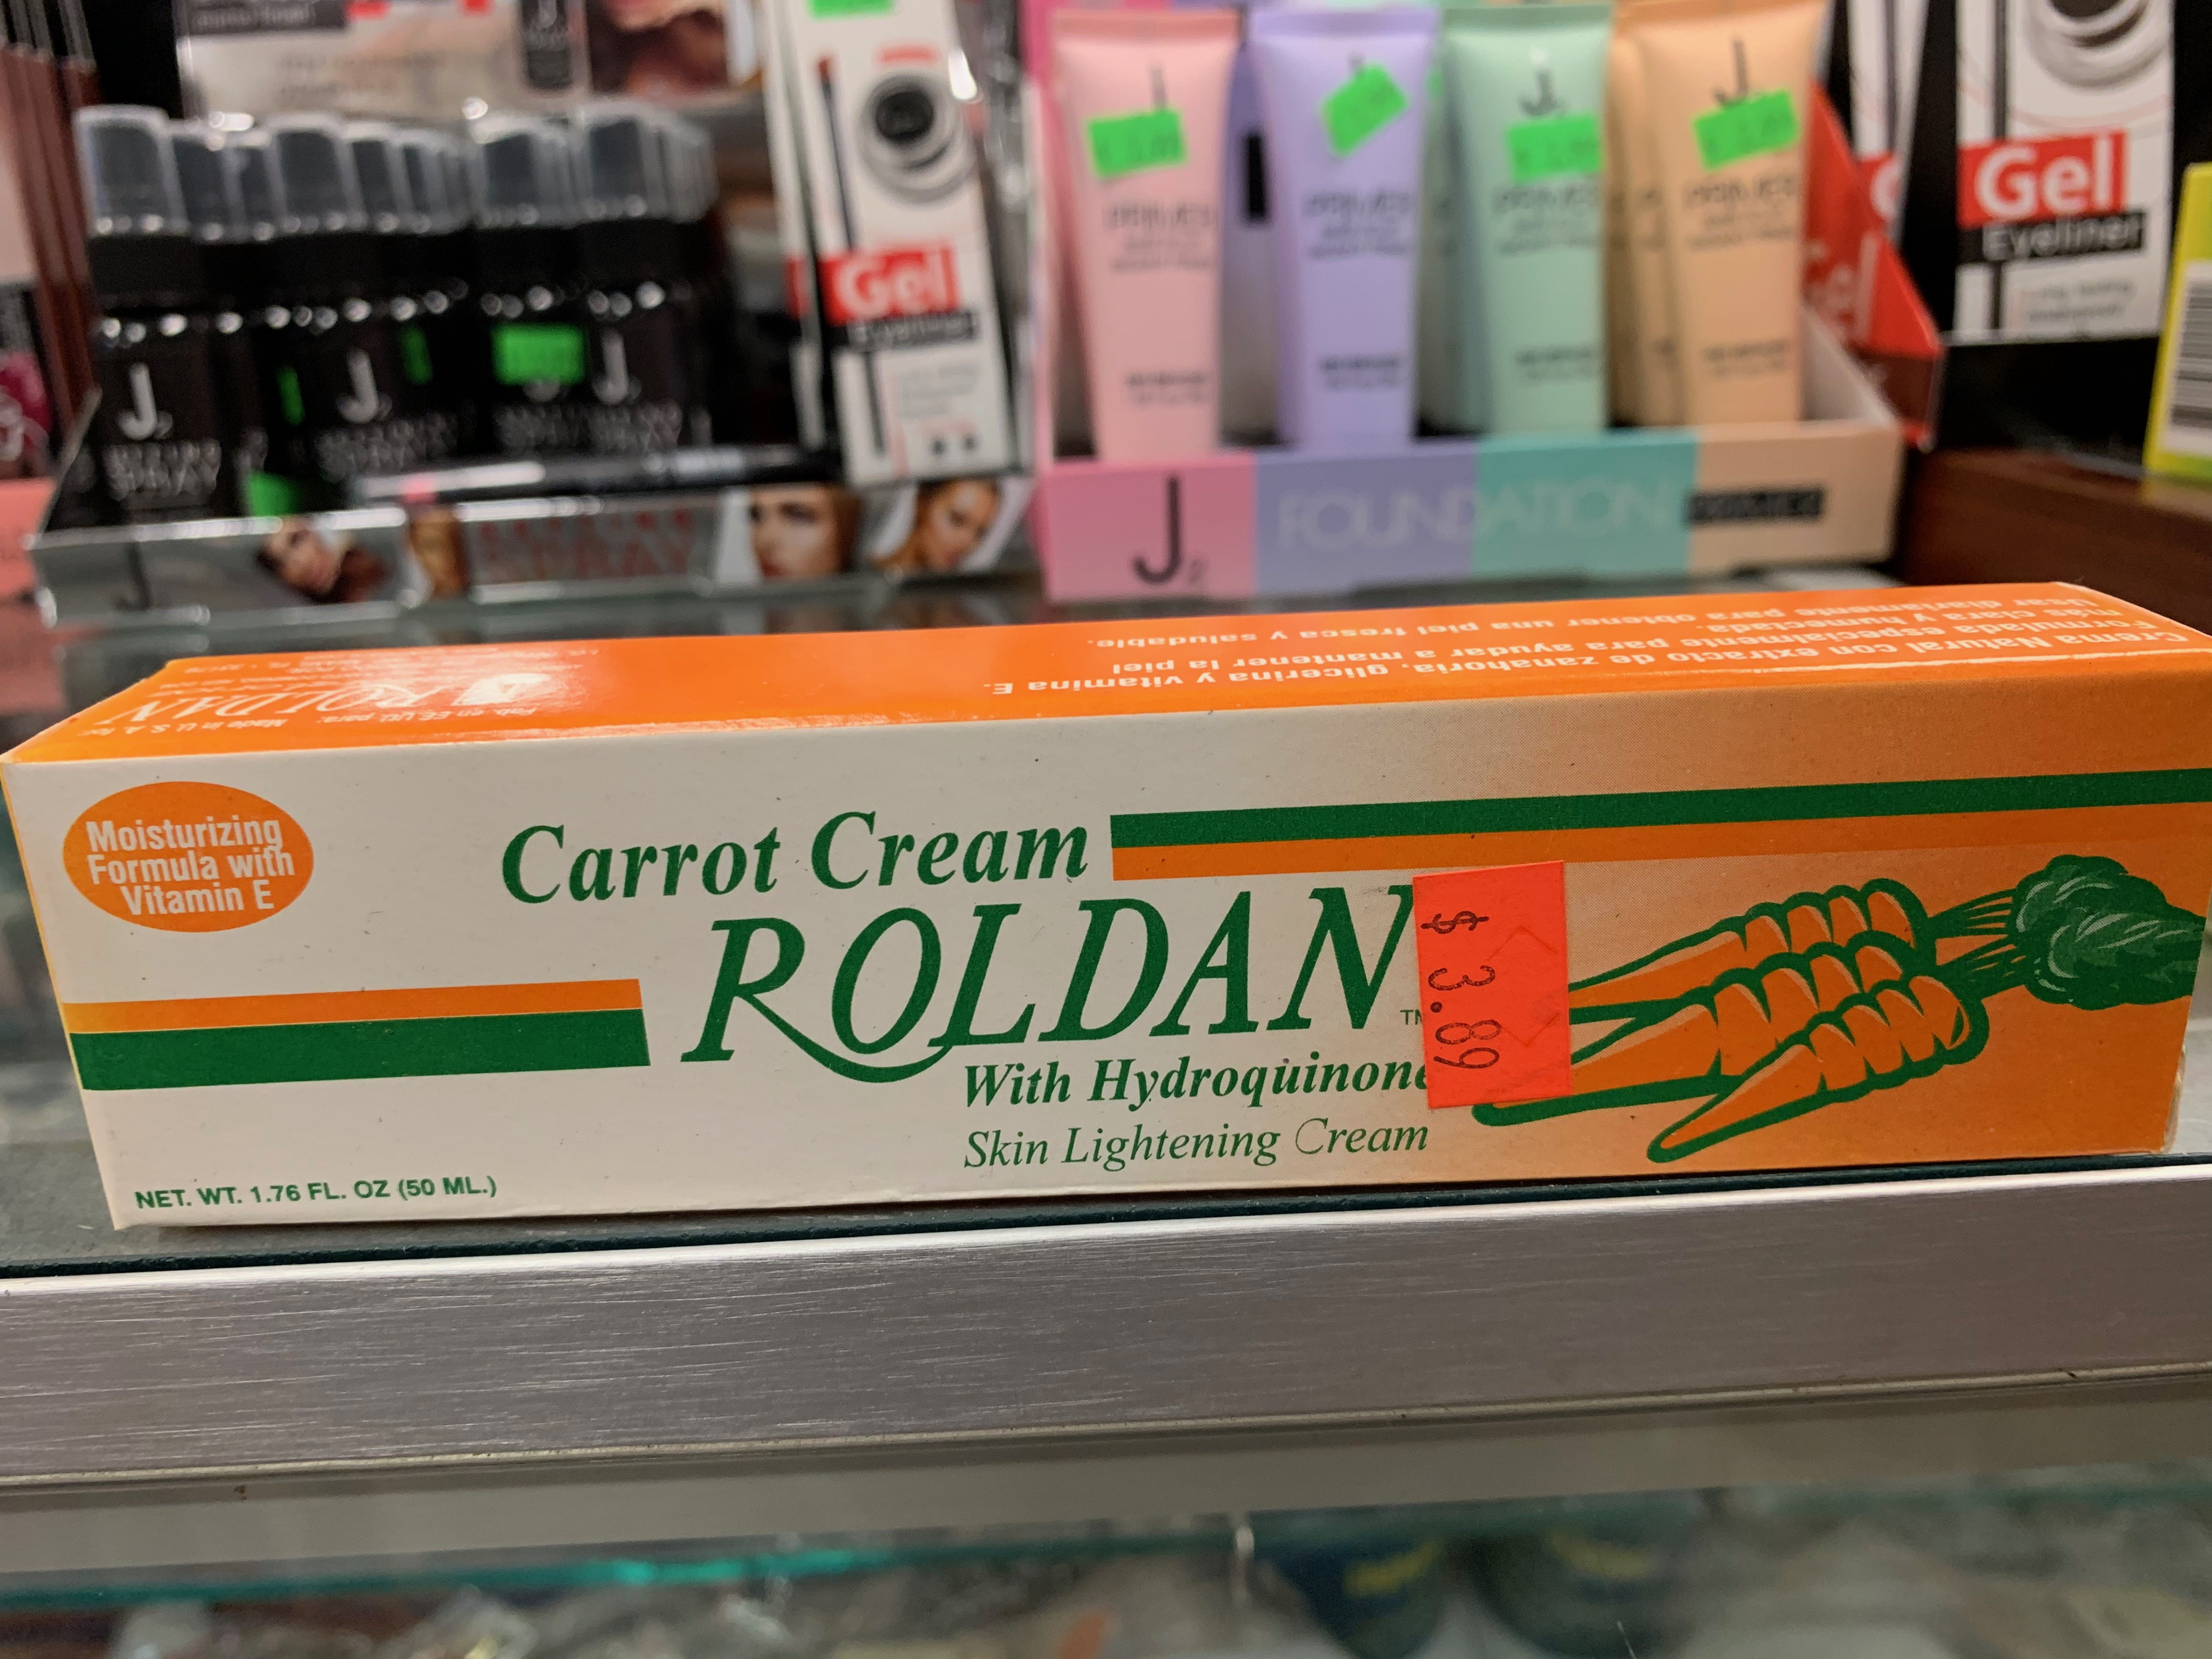 Carrot Cream Roldan